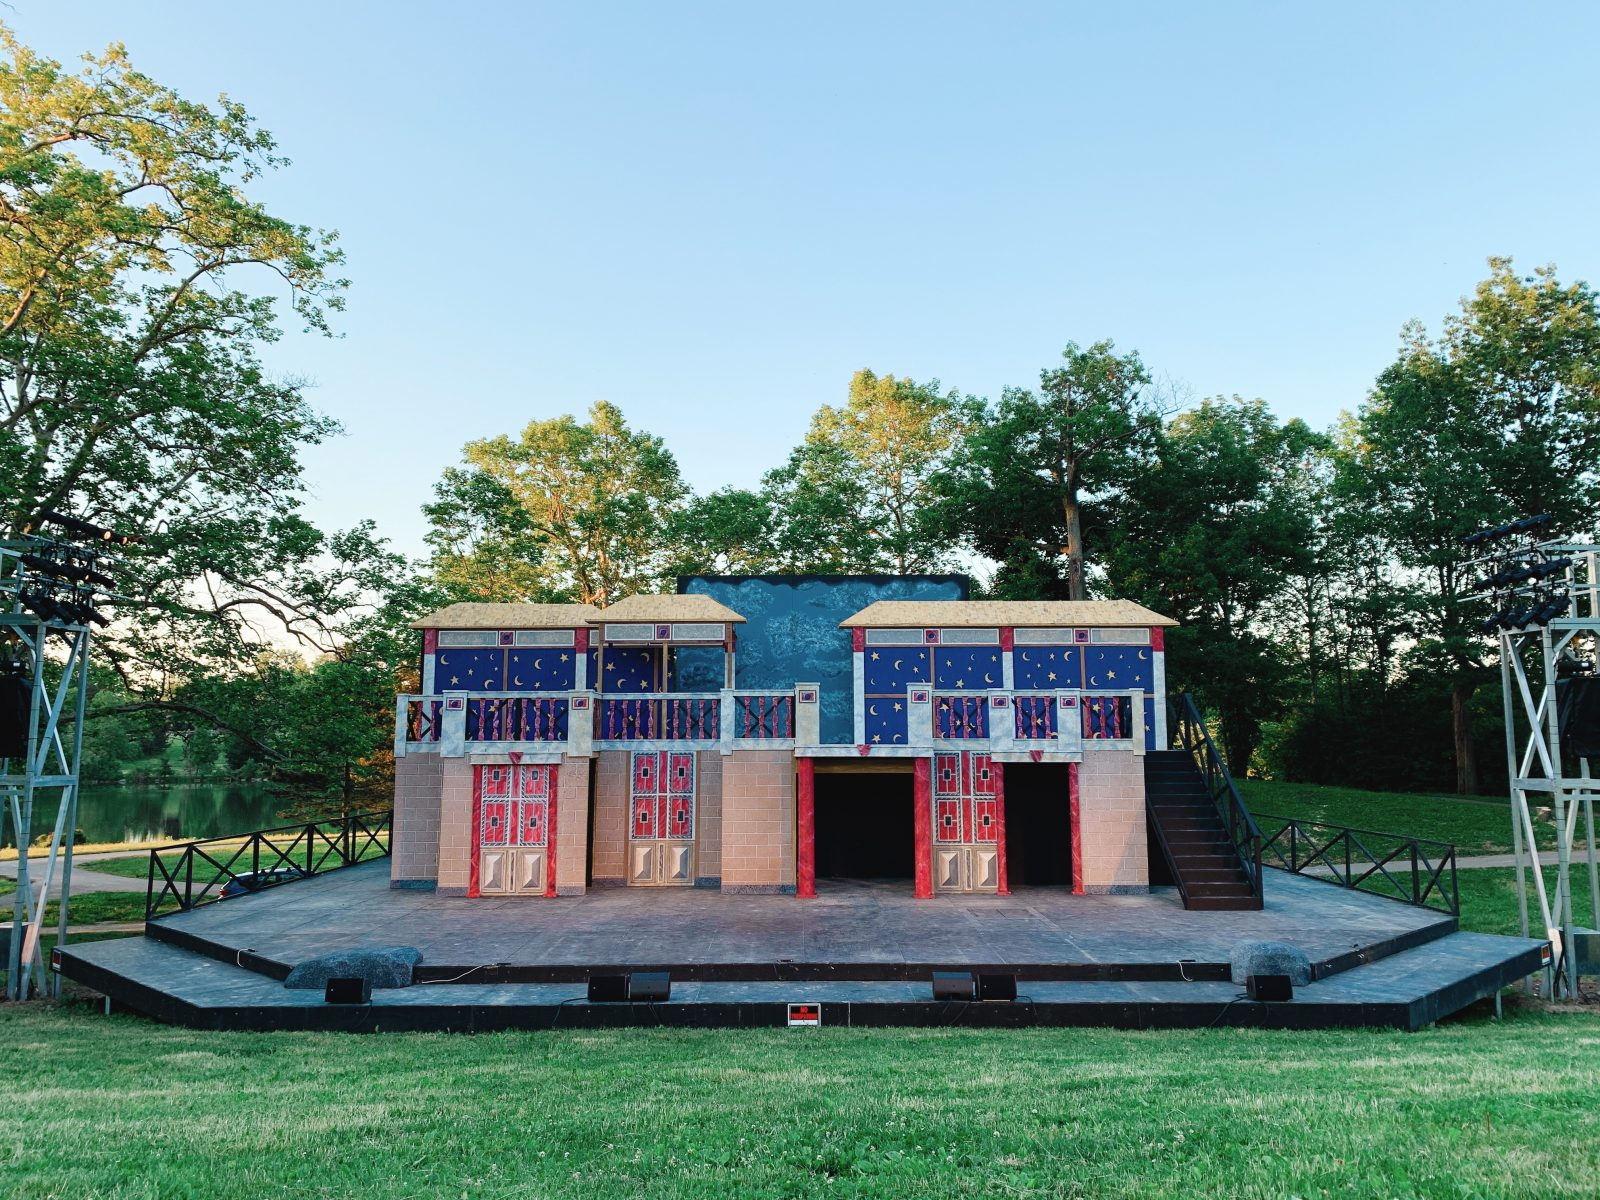 The set for 'The Tempest' at Shakespeare in Delaware Park. (Francesca Bond/Buffalo News)